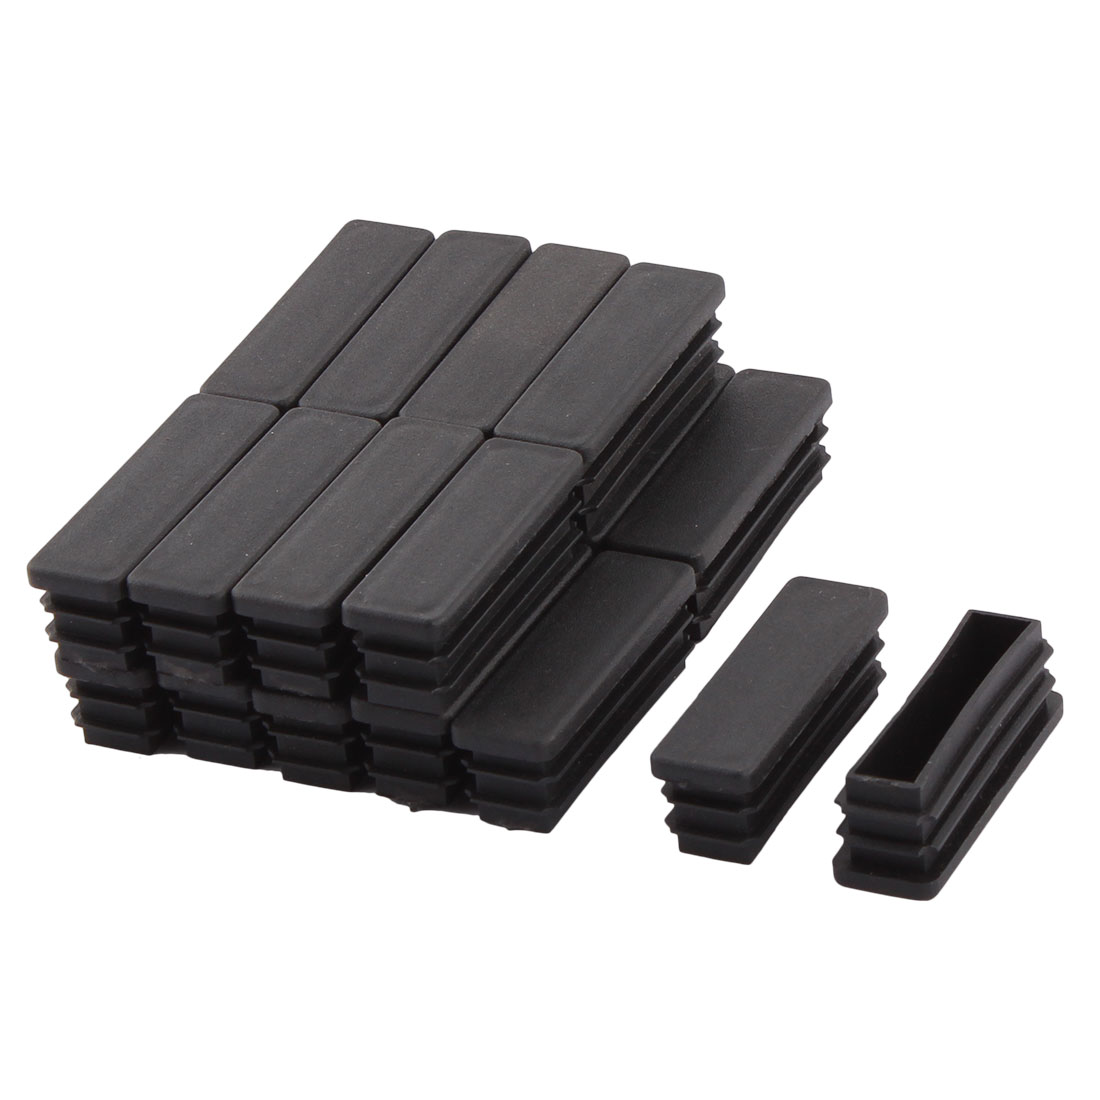 Household Plastic Rectangular Shaped Table Sofa Leg Feet Tube Pipe Insert Black 50 x 15mm 20 PCS